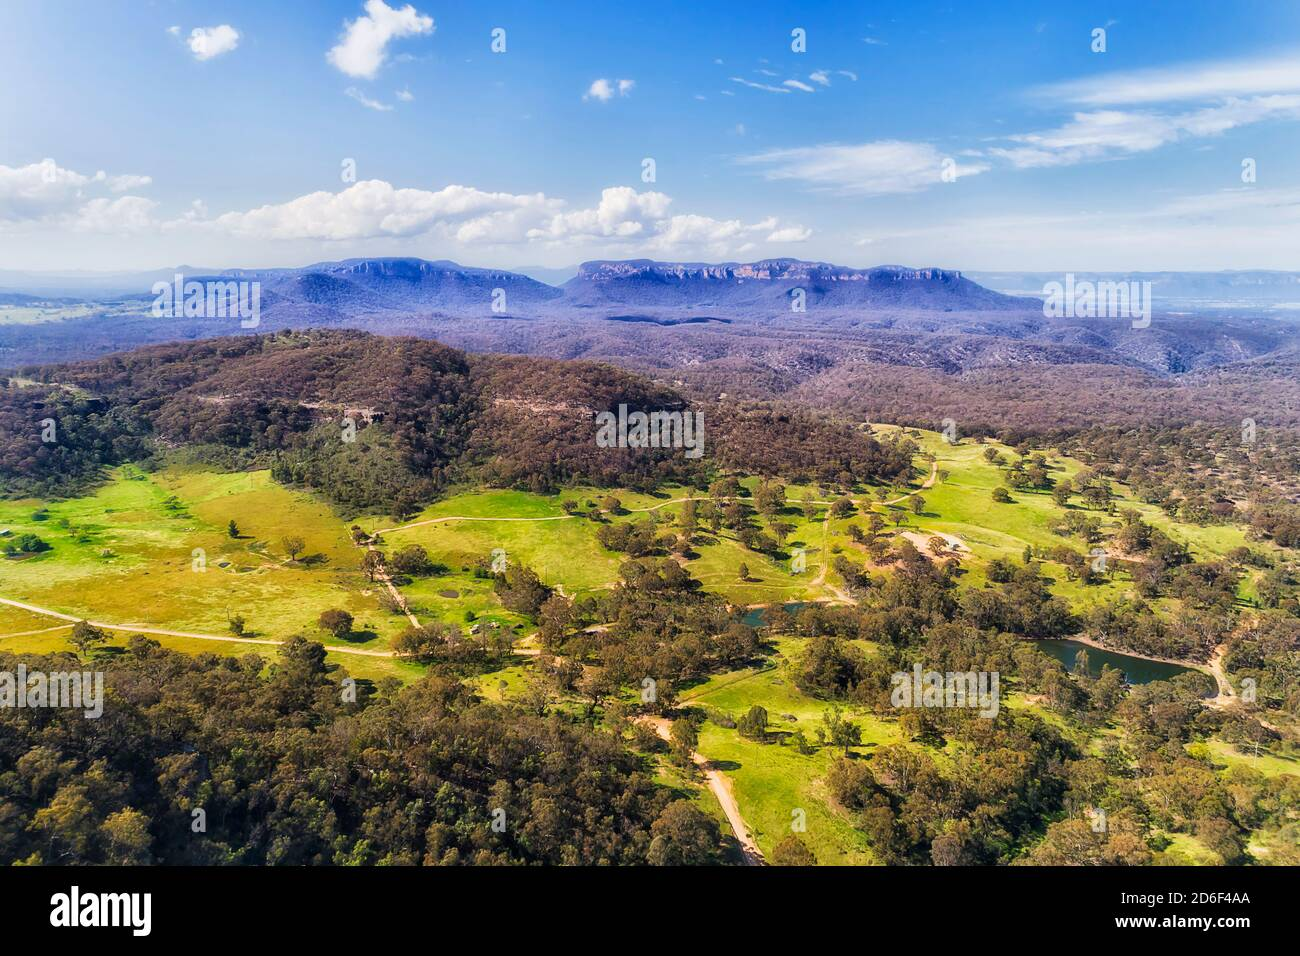 Capertee valley in aerial view above gumtree woods and green pastures between mountain ranges. Stock Photo